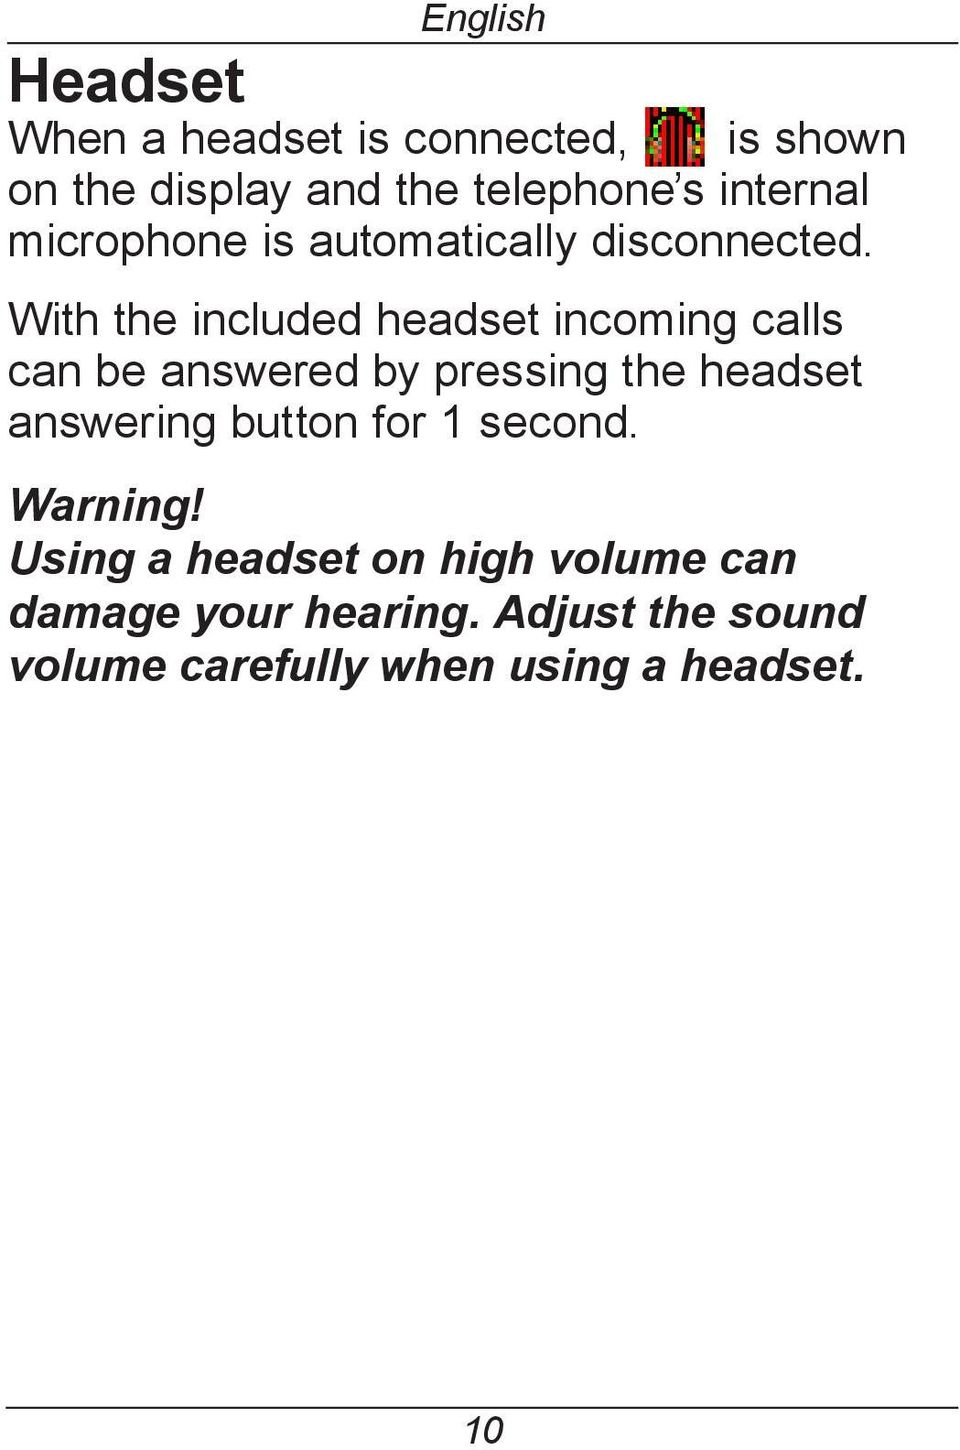 With the included headset incoming calls can be answered by pressing the headset answering